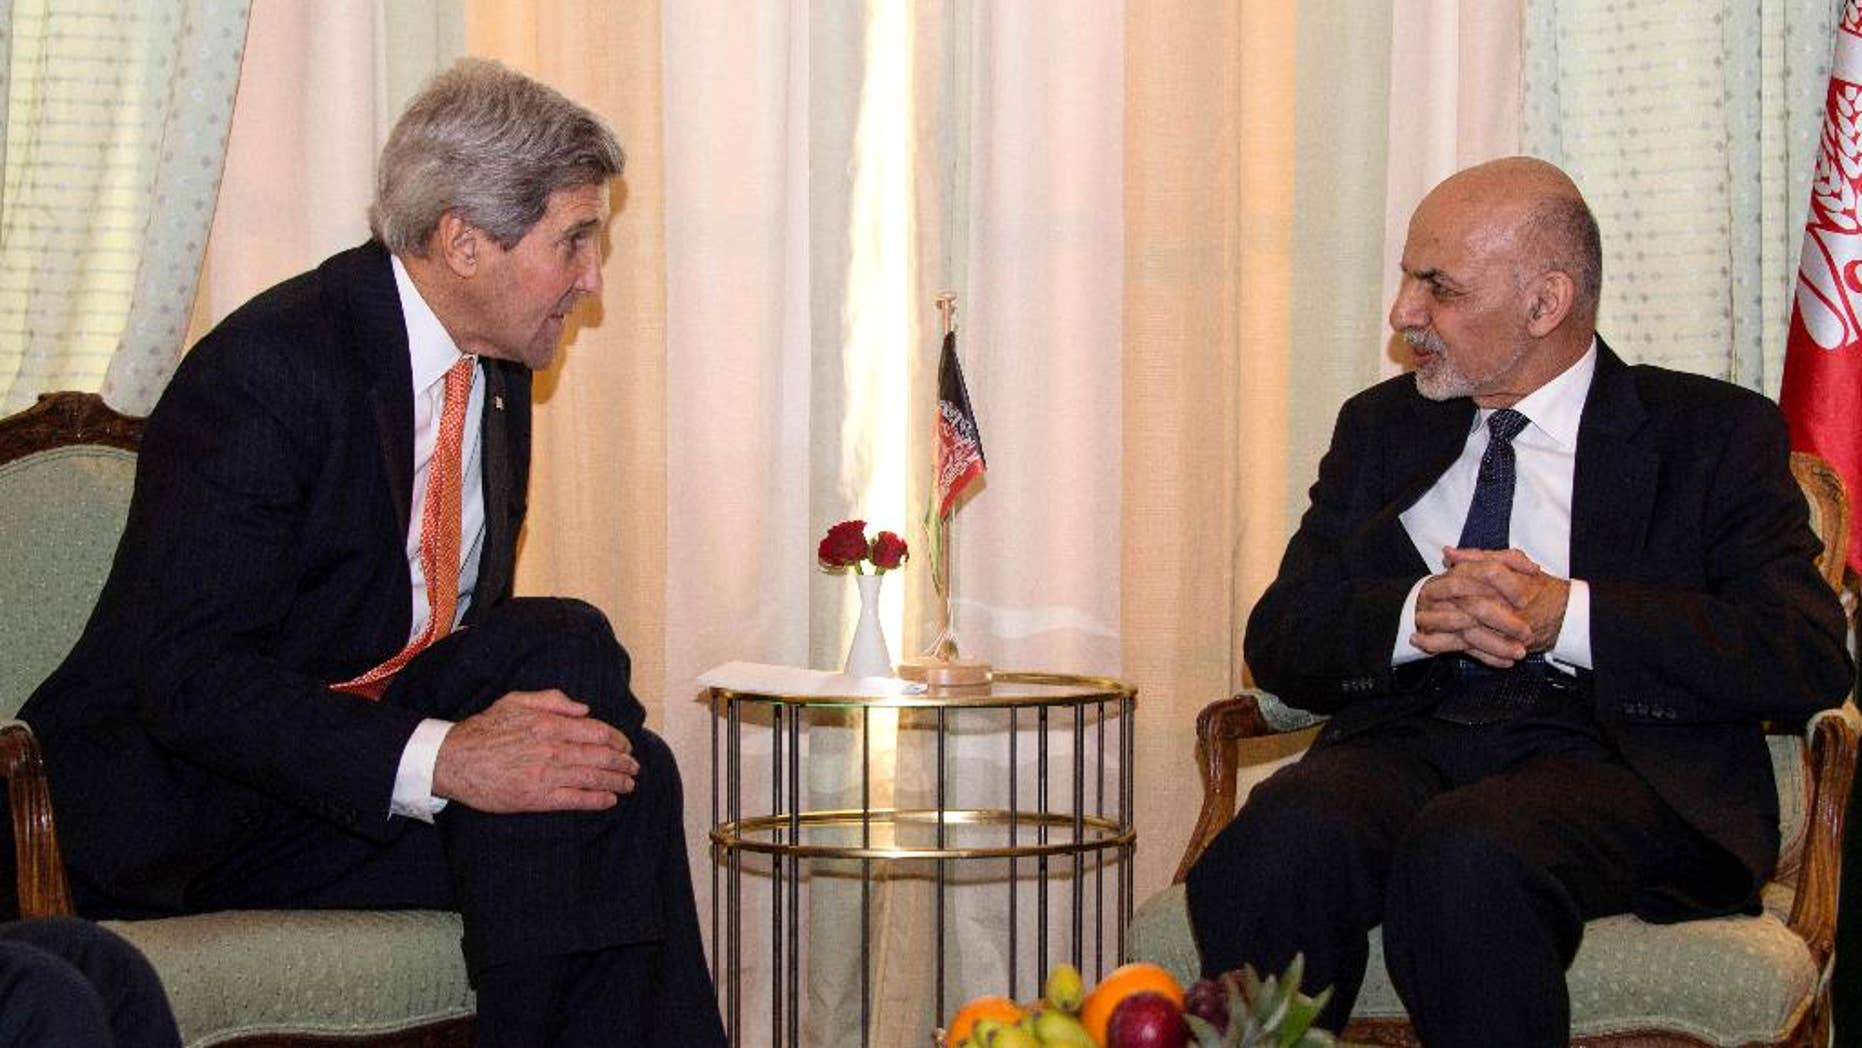 """Secretary of State John Kerry talks with Afghanistan President Mohammad Ashraf Ghani during a bilateral meeting at the 51st Munich Security Conference (MSC) in Munich, Germany, Saturday, Feb. 7, 2015. The Ukraine conflict, Islamic State group jihadists and the wider """"collapse of the global order"""" occupy the world's security community at the three-day annual meeting.  (AP Photo/Jim Watson, Pool)"""